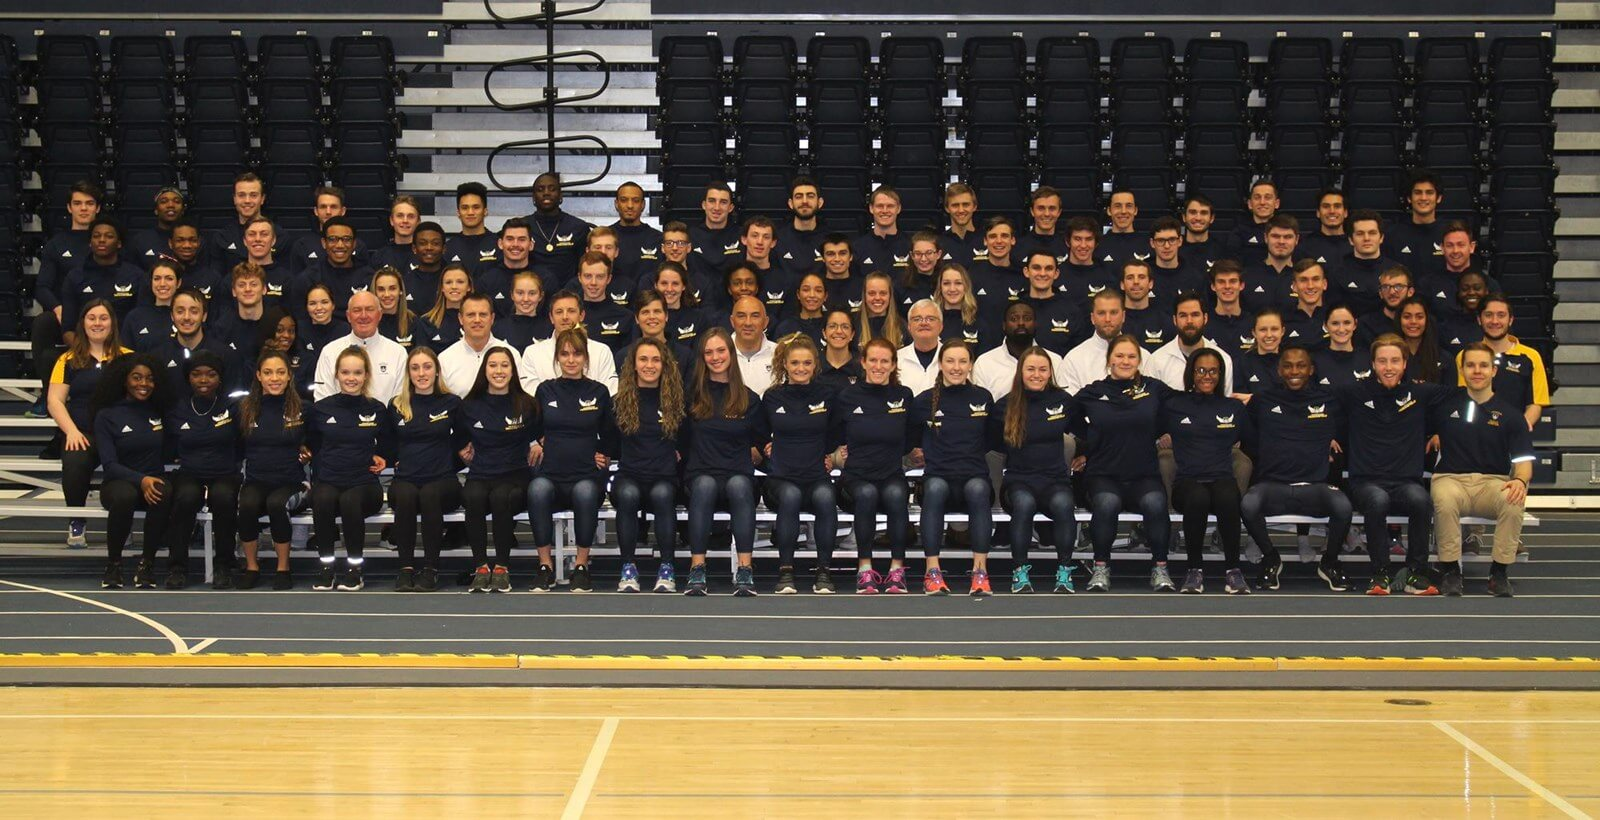 university of windsor lancers track and field